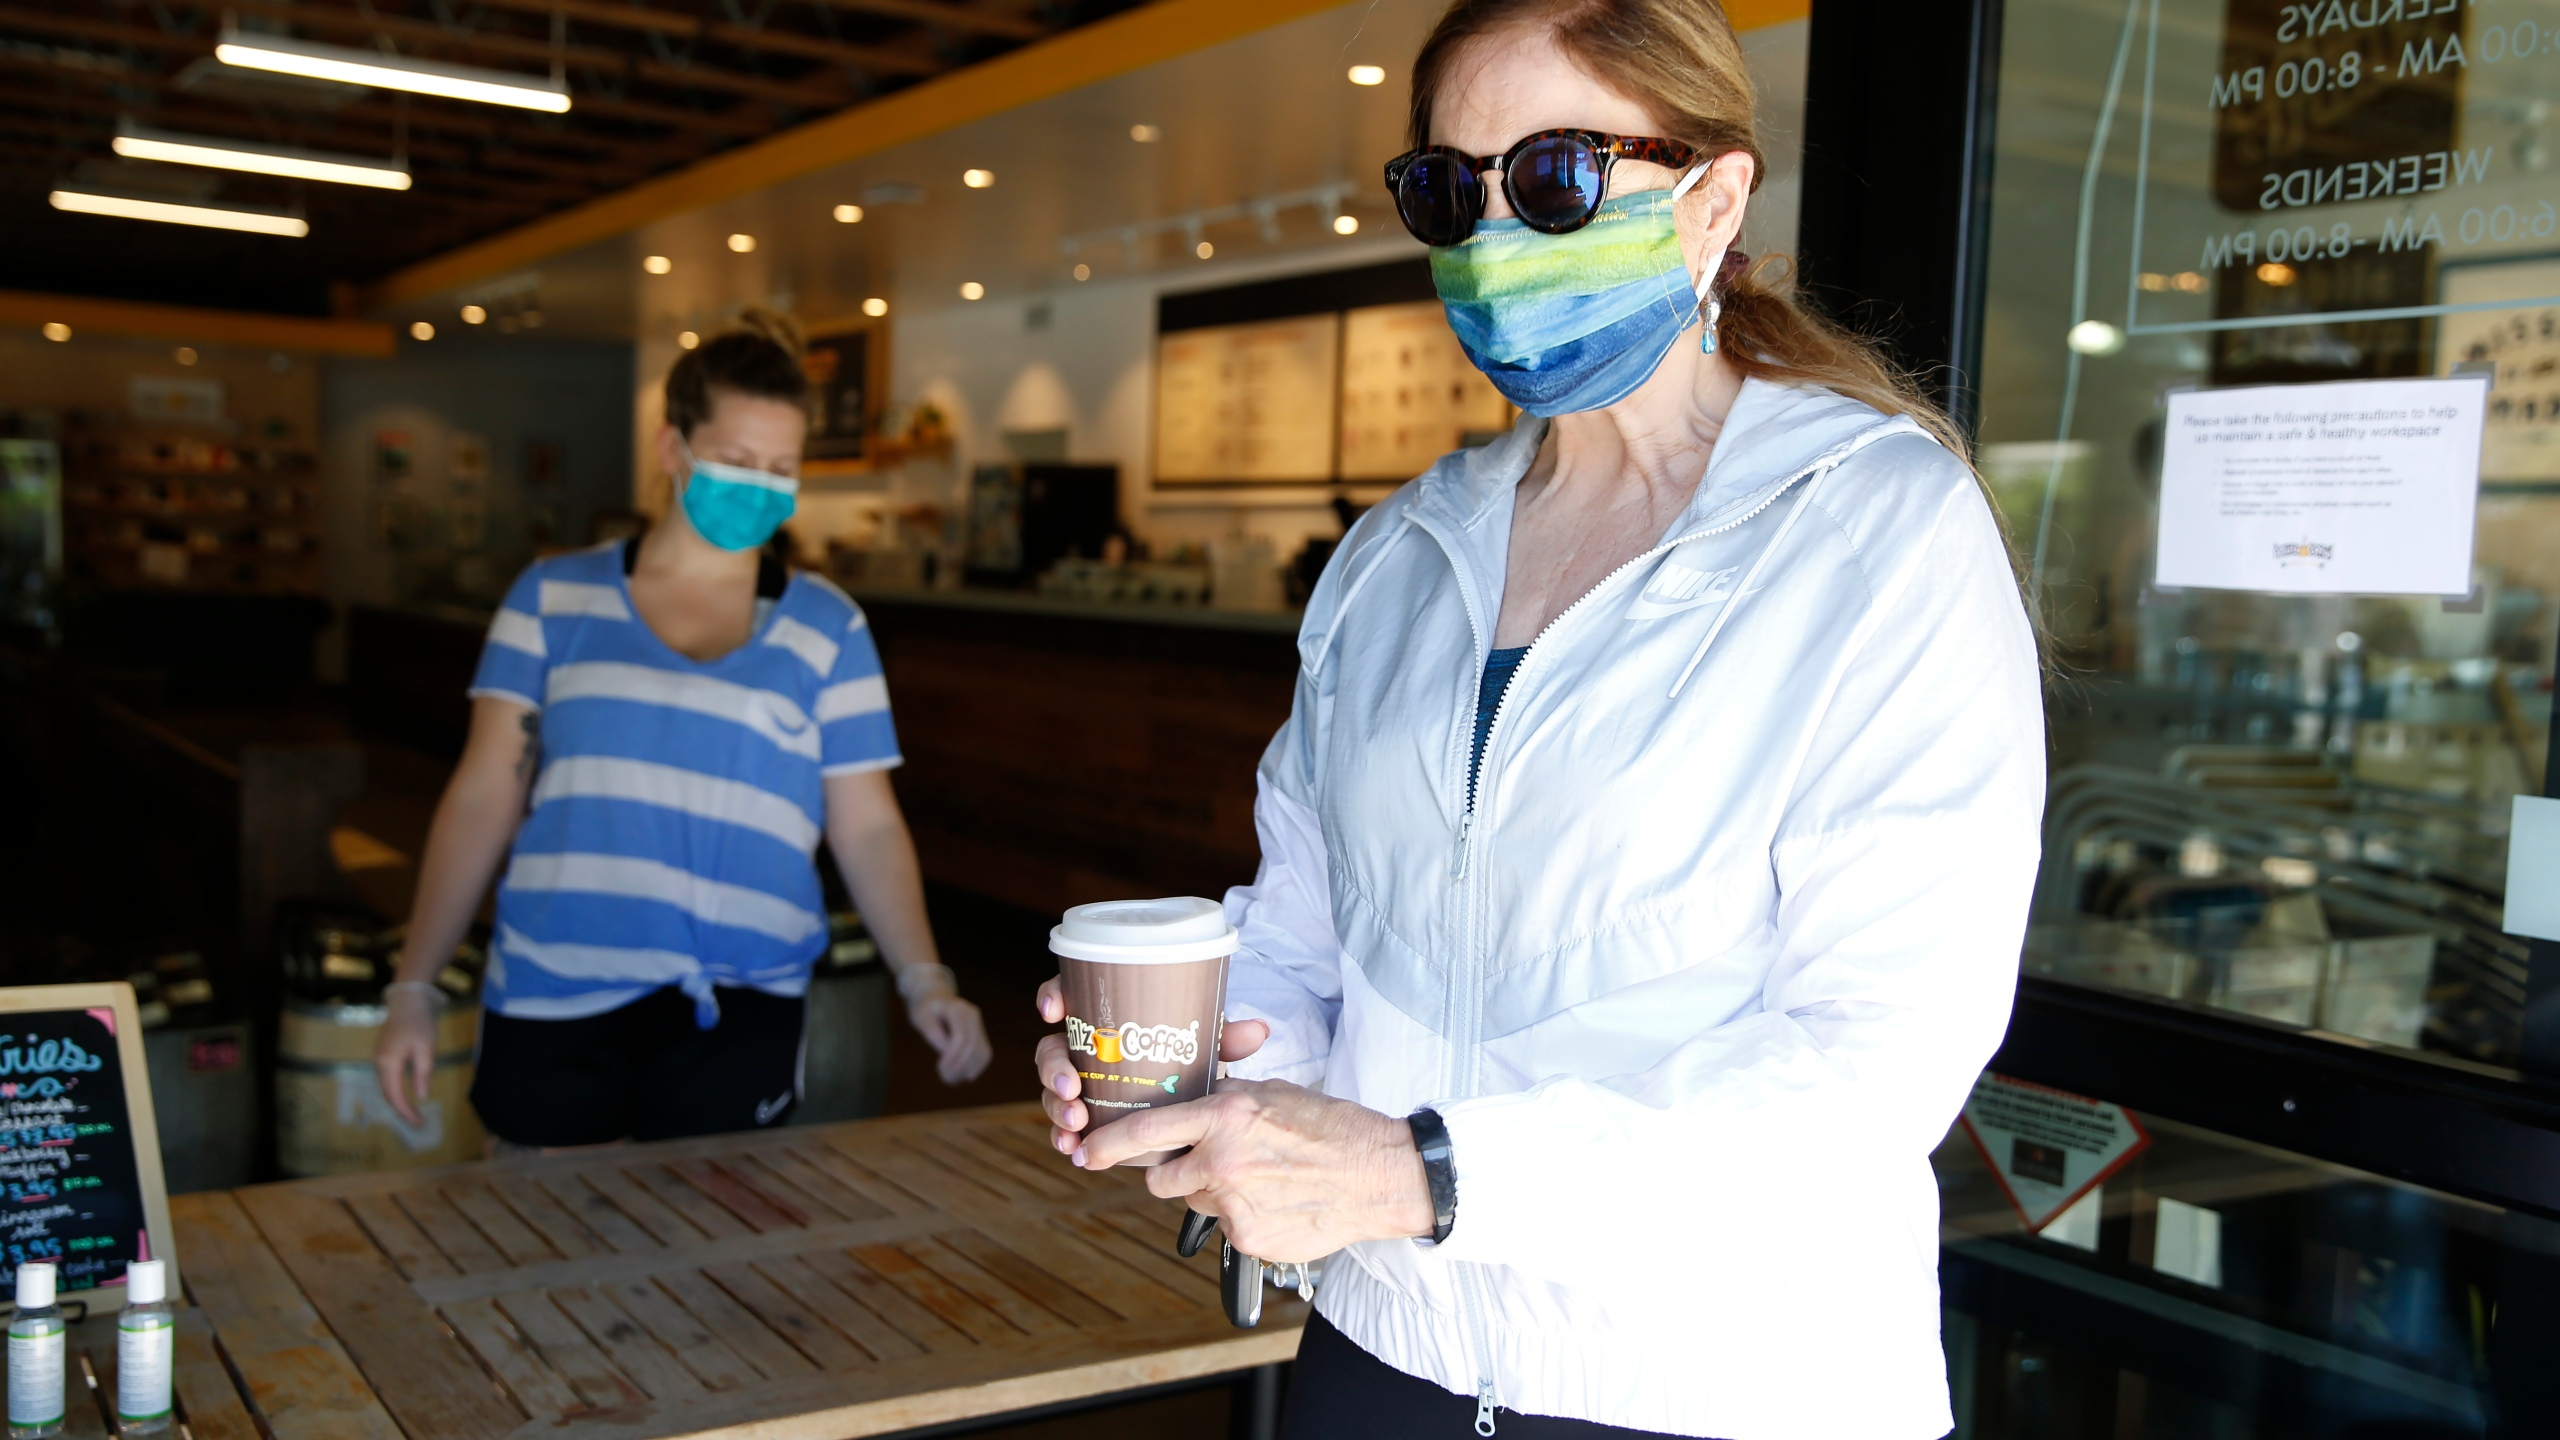 Barbara Meier, right, wears a face mask as picks up her drink order from Philz Coffee in Davis on April 27, 2020. (Rich Pedroncelli/Associated Press)